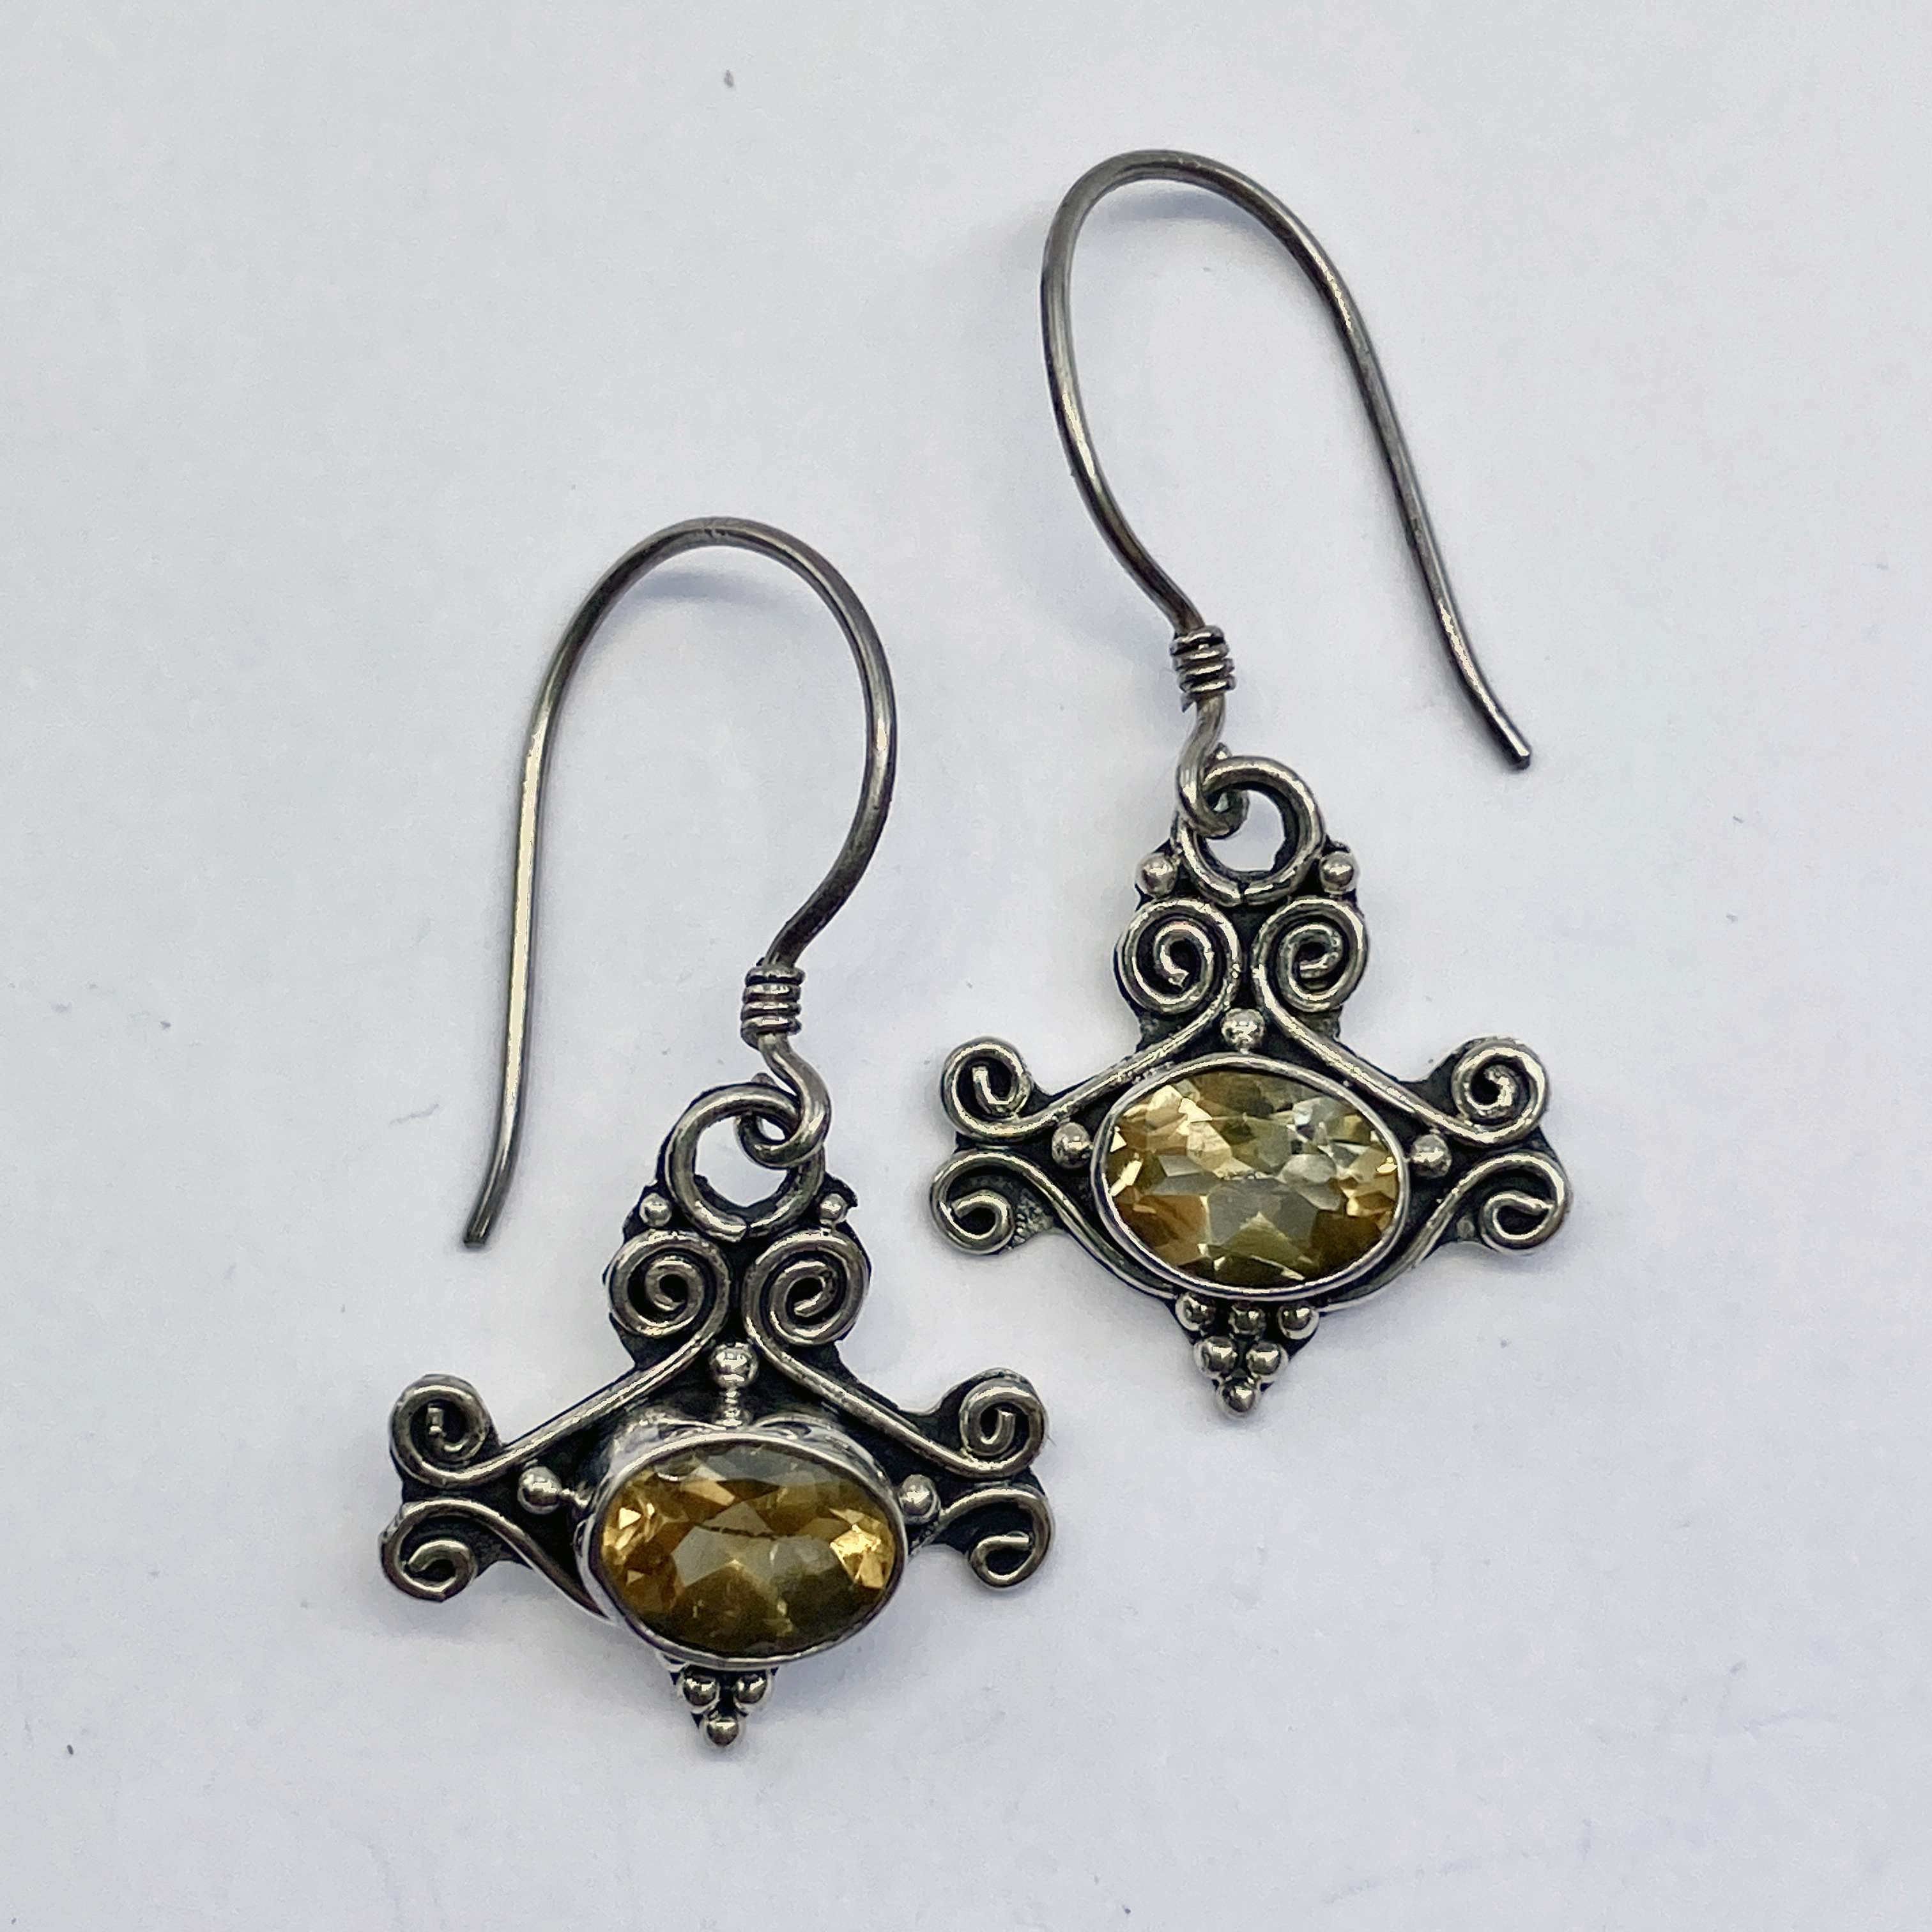 (HANDMADE 925 BALI STERLING SILVER EARRINGS WITH CITRINE)